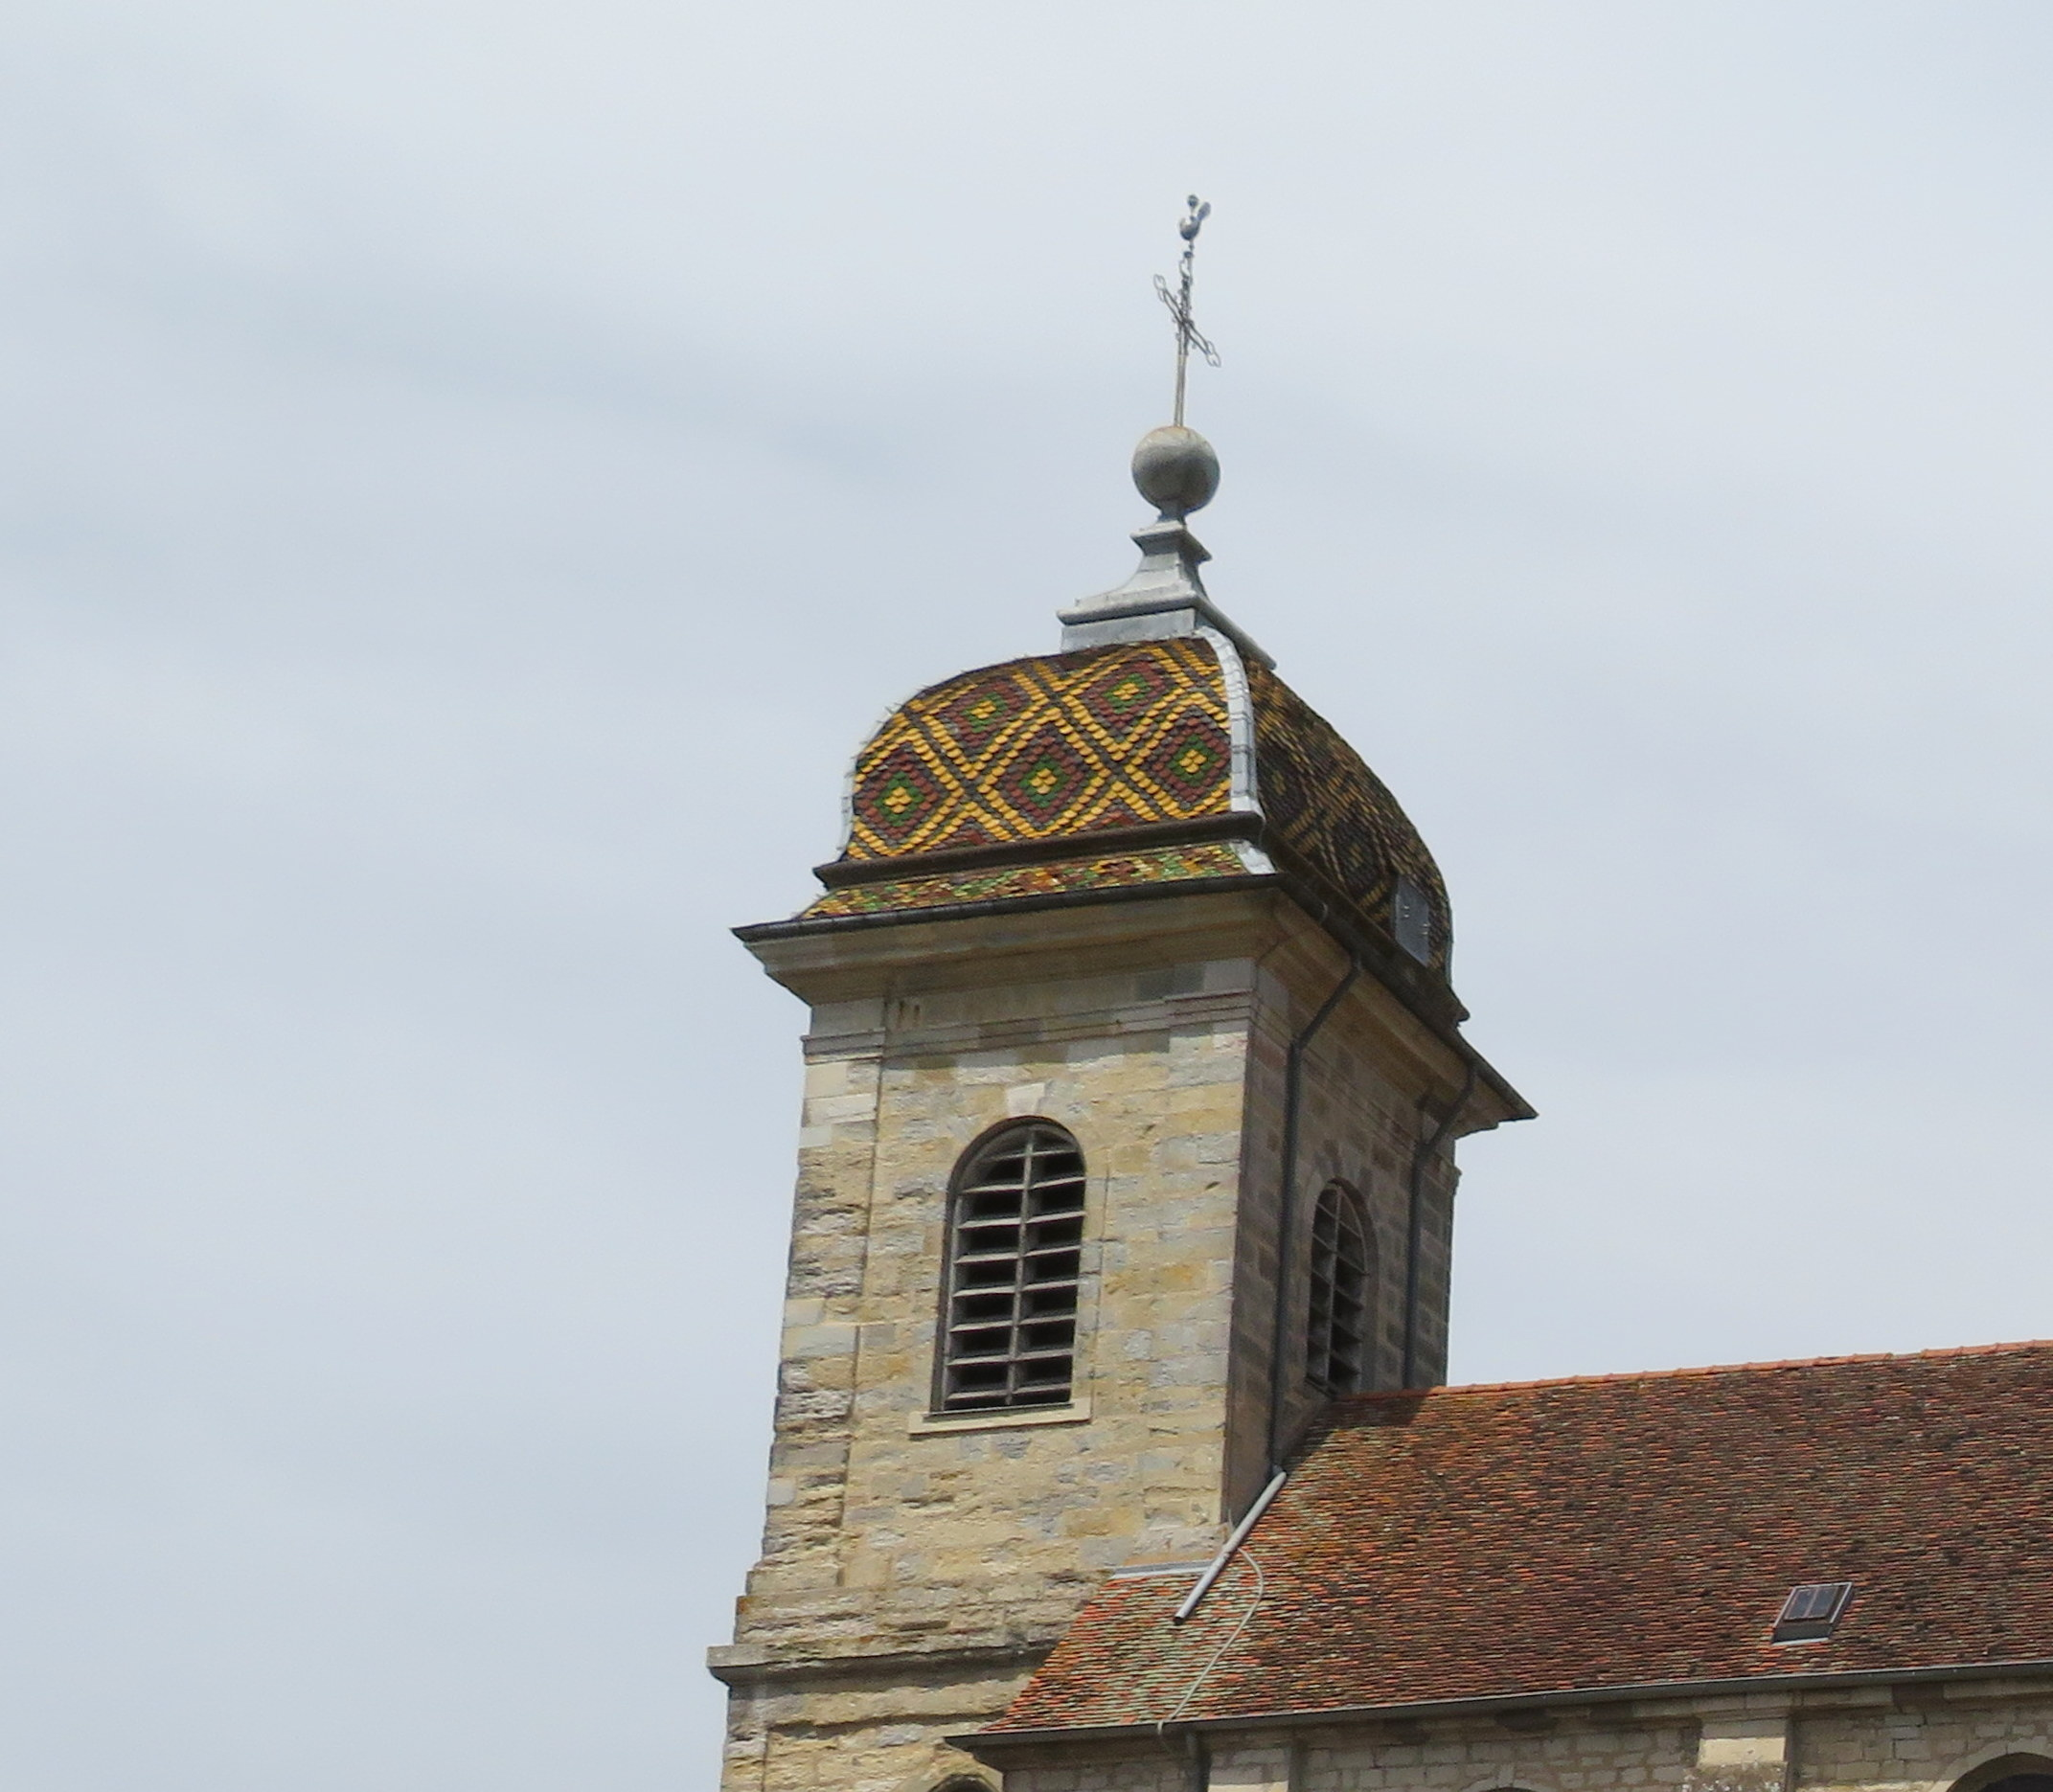 besancon-fontenelay_churches with tile steeples.JPG